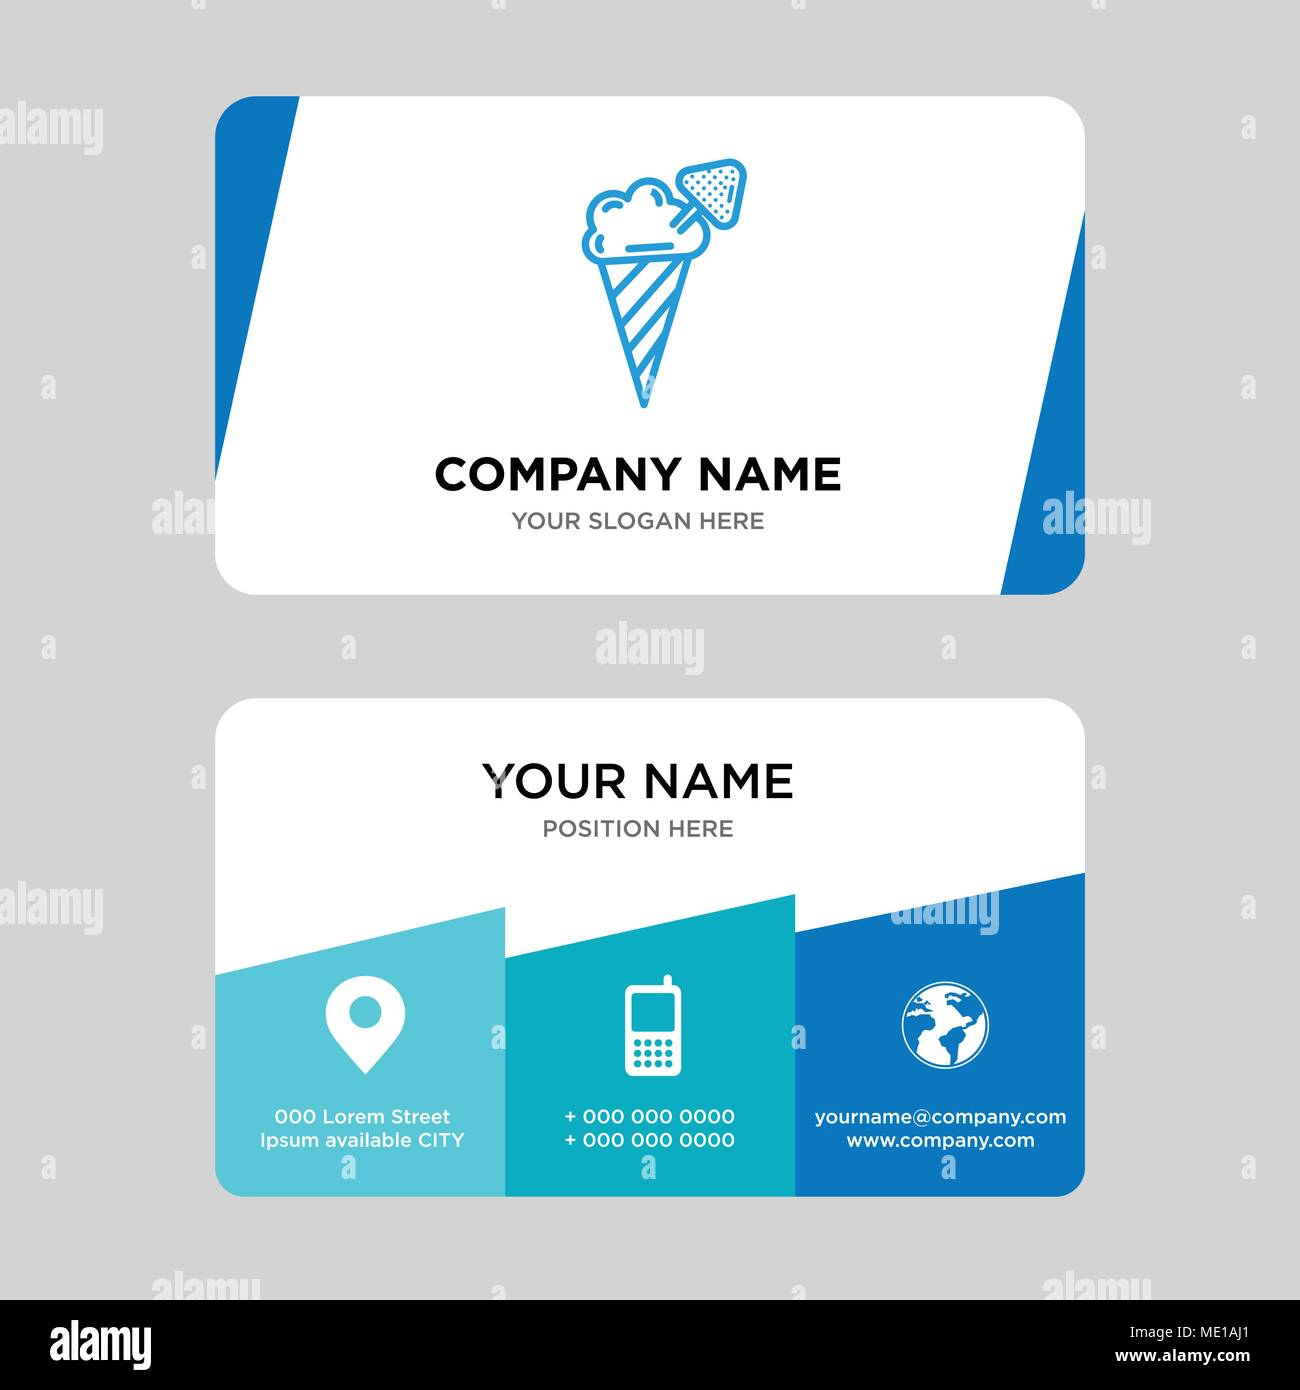 ice cream business card design template visiting for your company